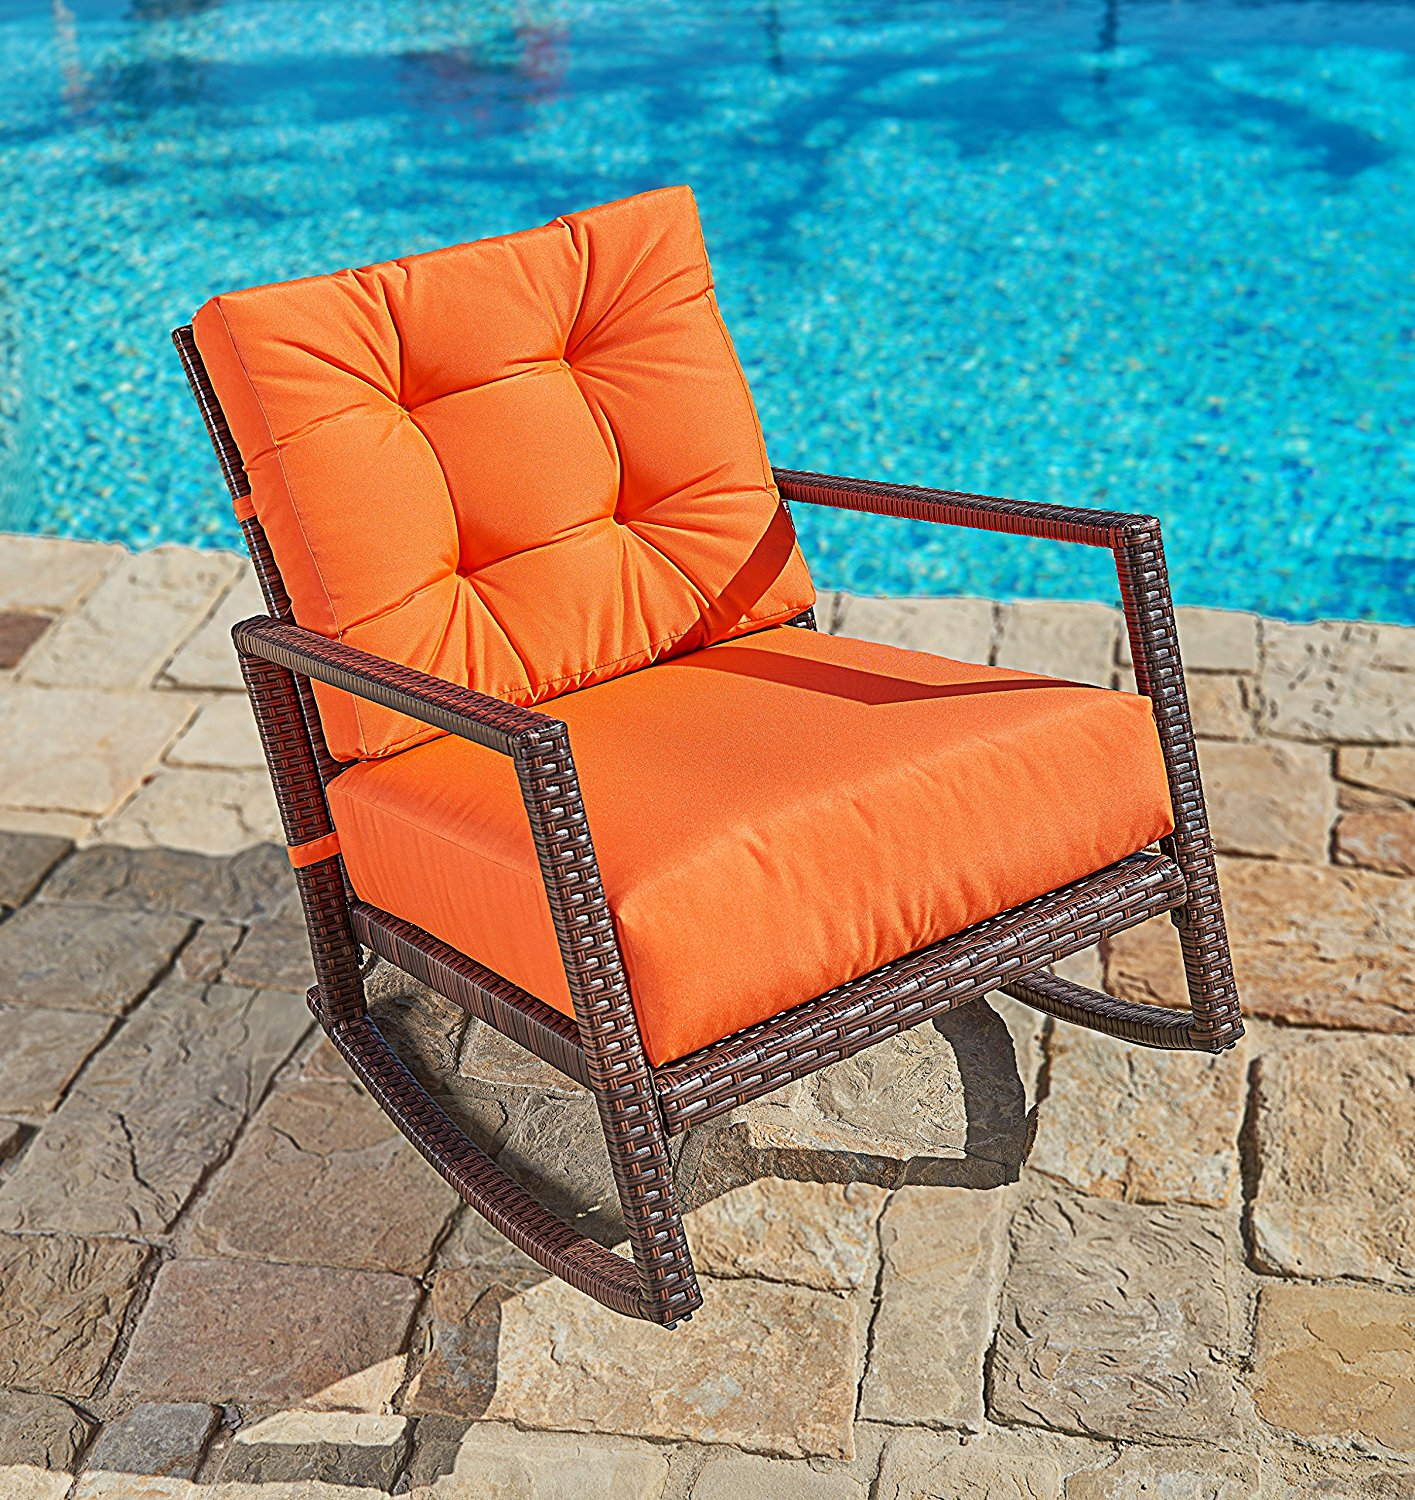 Suncrown Outdoor Furniture Vibrant Orange Patio Rocking Chair